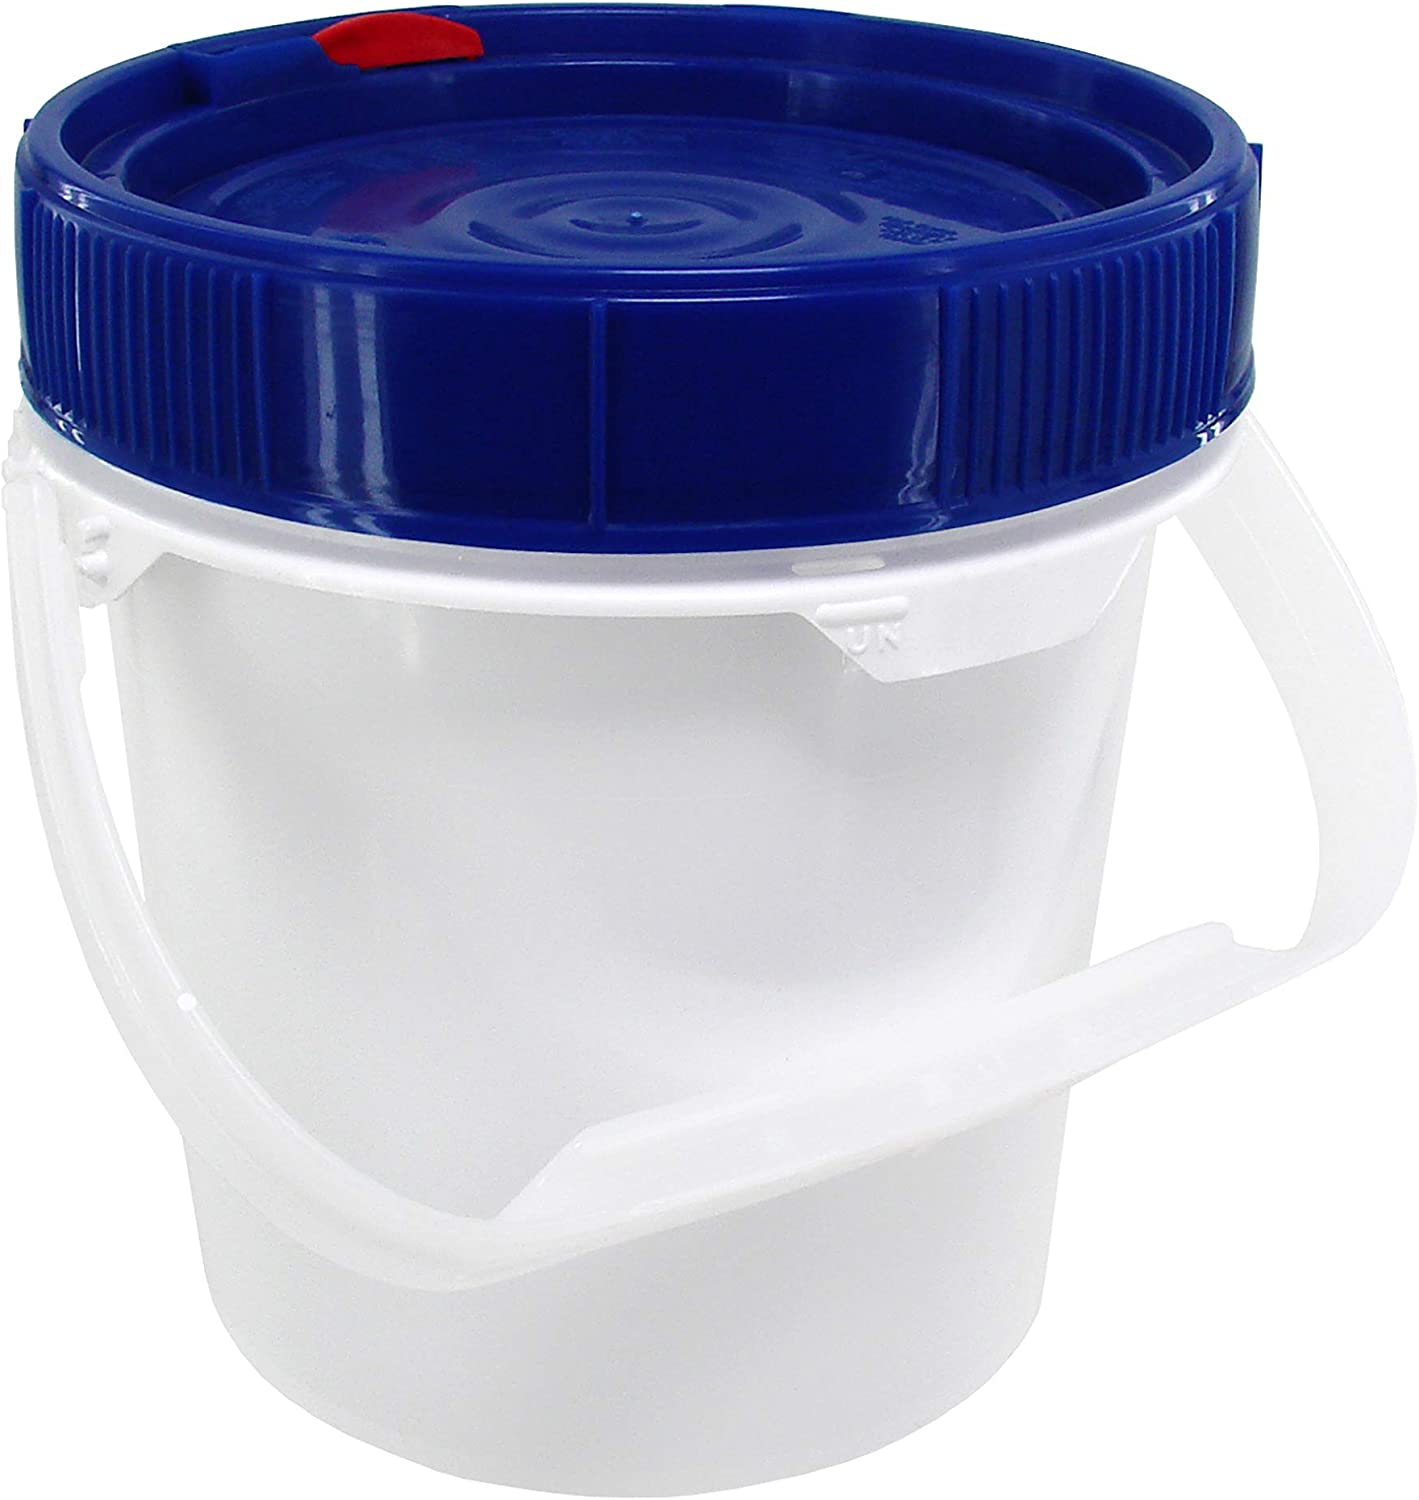 Screw Top Bucket - 0.6 Gallon with Blue Lid, 49 mil